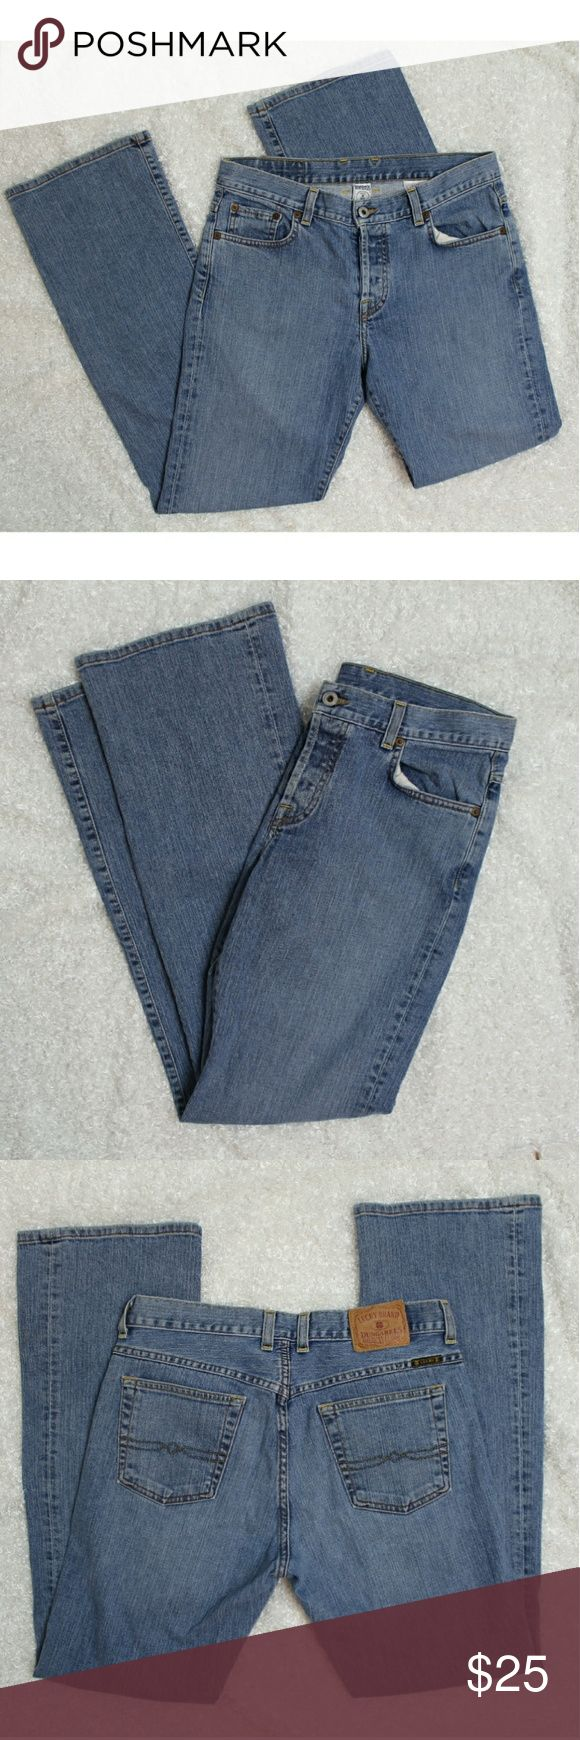 """Lucky Brand Easy Rider light blue dungarees Classic lucky brand dungaree jeans. Medium blue and straight leg. GUC, back tag is coming off a little bit Size 8/29 :: Approx Measurements:: Waist 15.5"""" Rise 9.5"""" Inseam 31"""" Lucky Brand Jeans Straight Leg"""